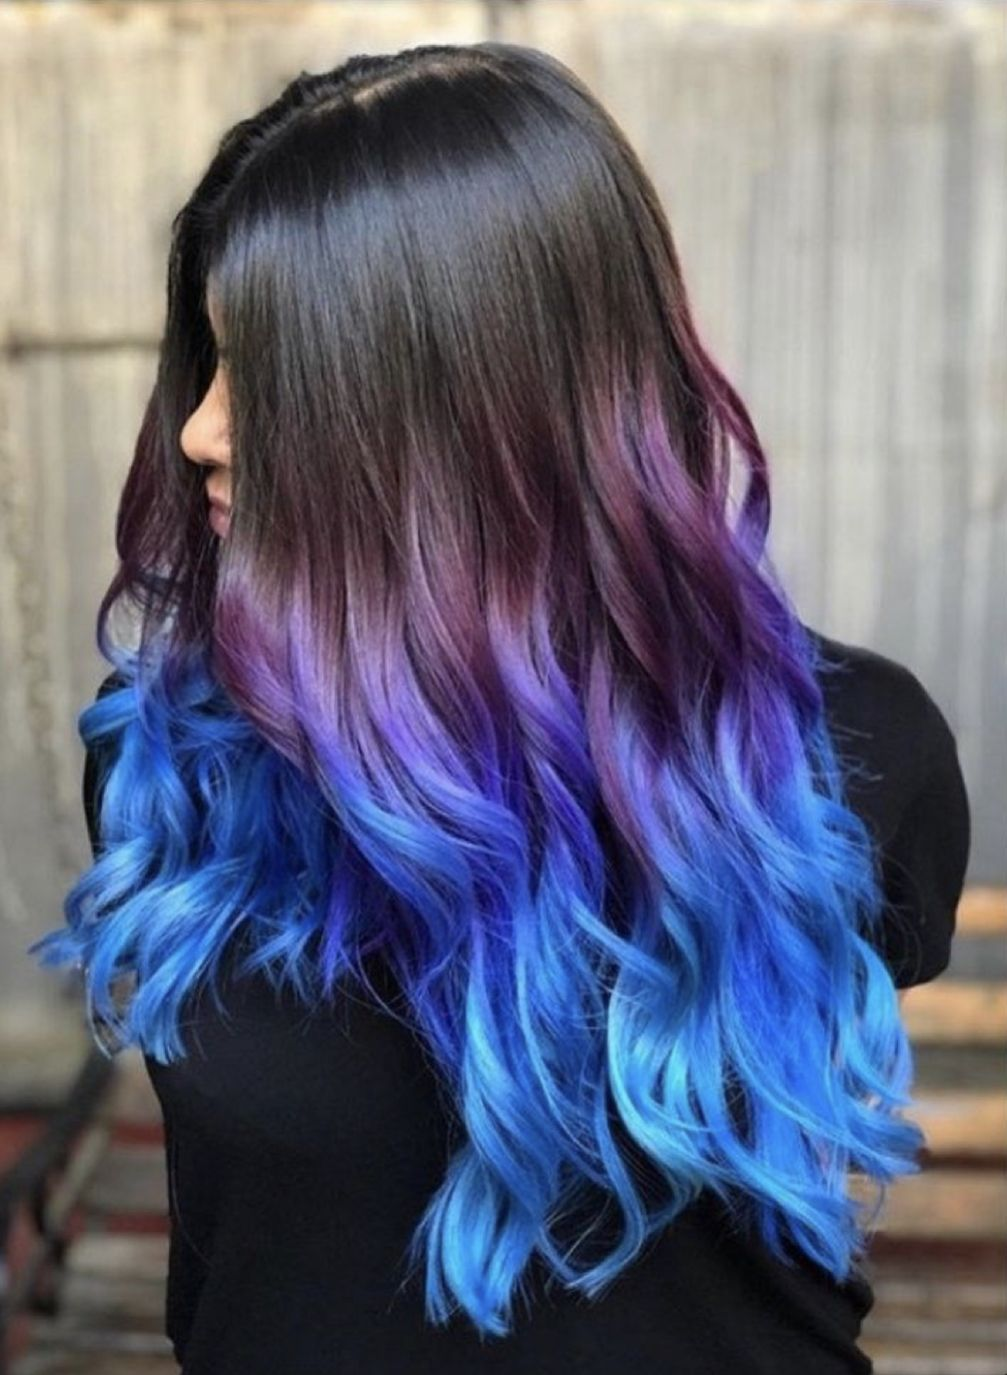 Amazing Blue And Purple Ombre Hair In 2020 Hair Dye Tips Hair Color Pink Purple Blue Hair Ombre